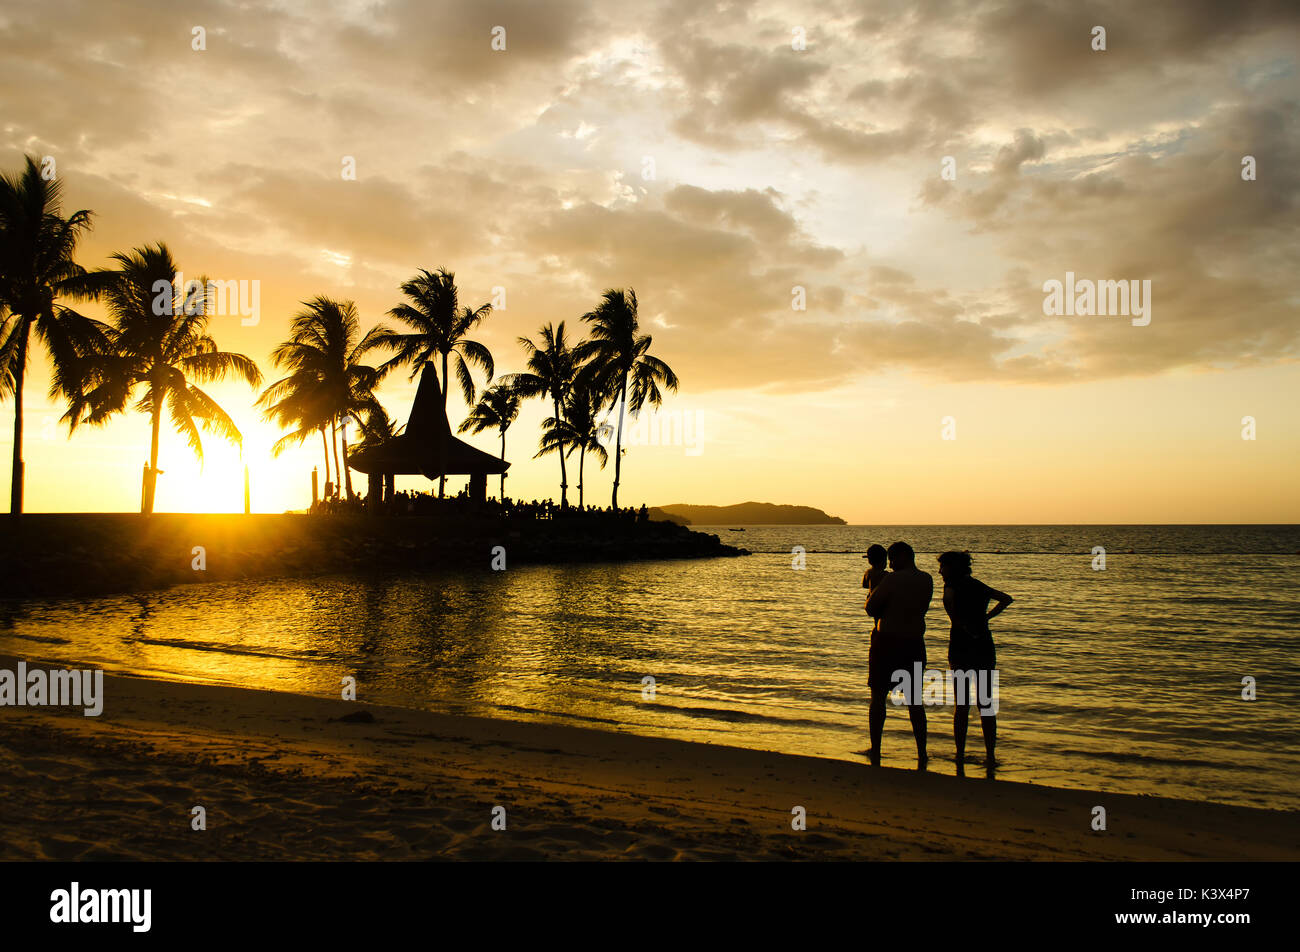 Silhouettes of unidentified people at the beach during during sunset in Kota Kinabalu, Sabah Borneo, Malaysia. - Stock Image